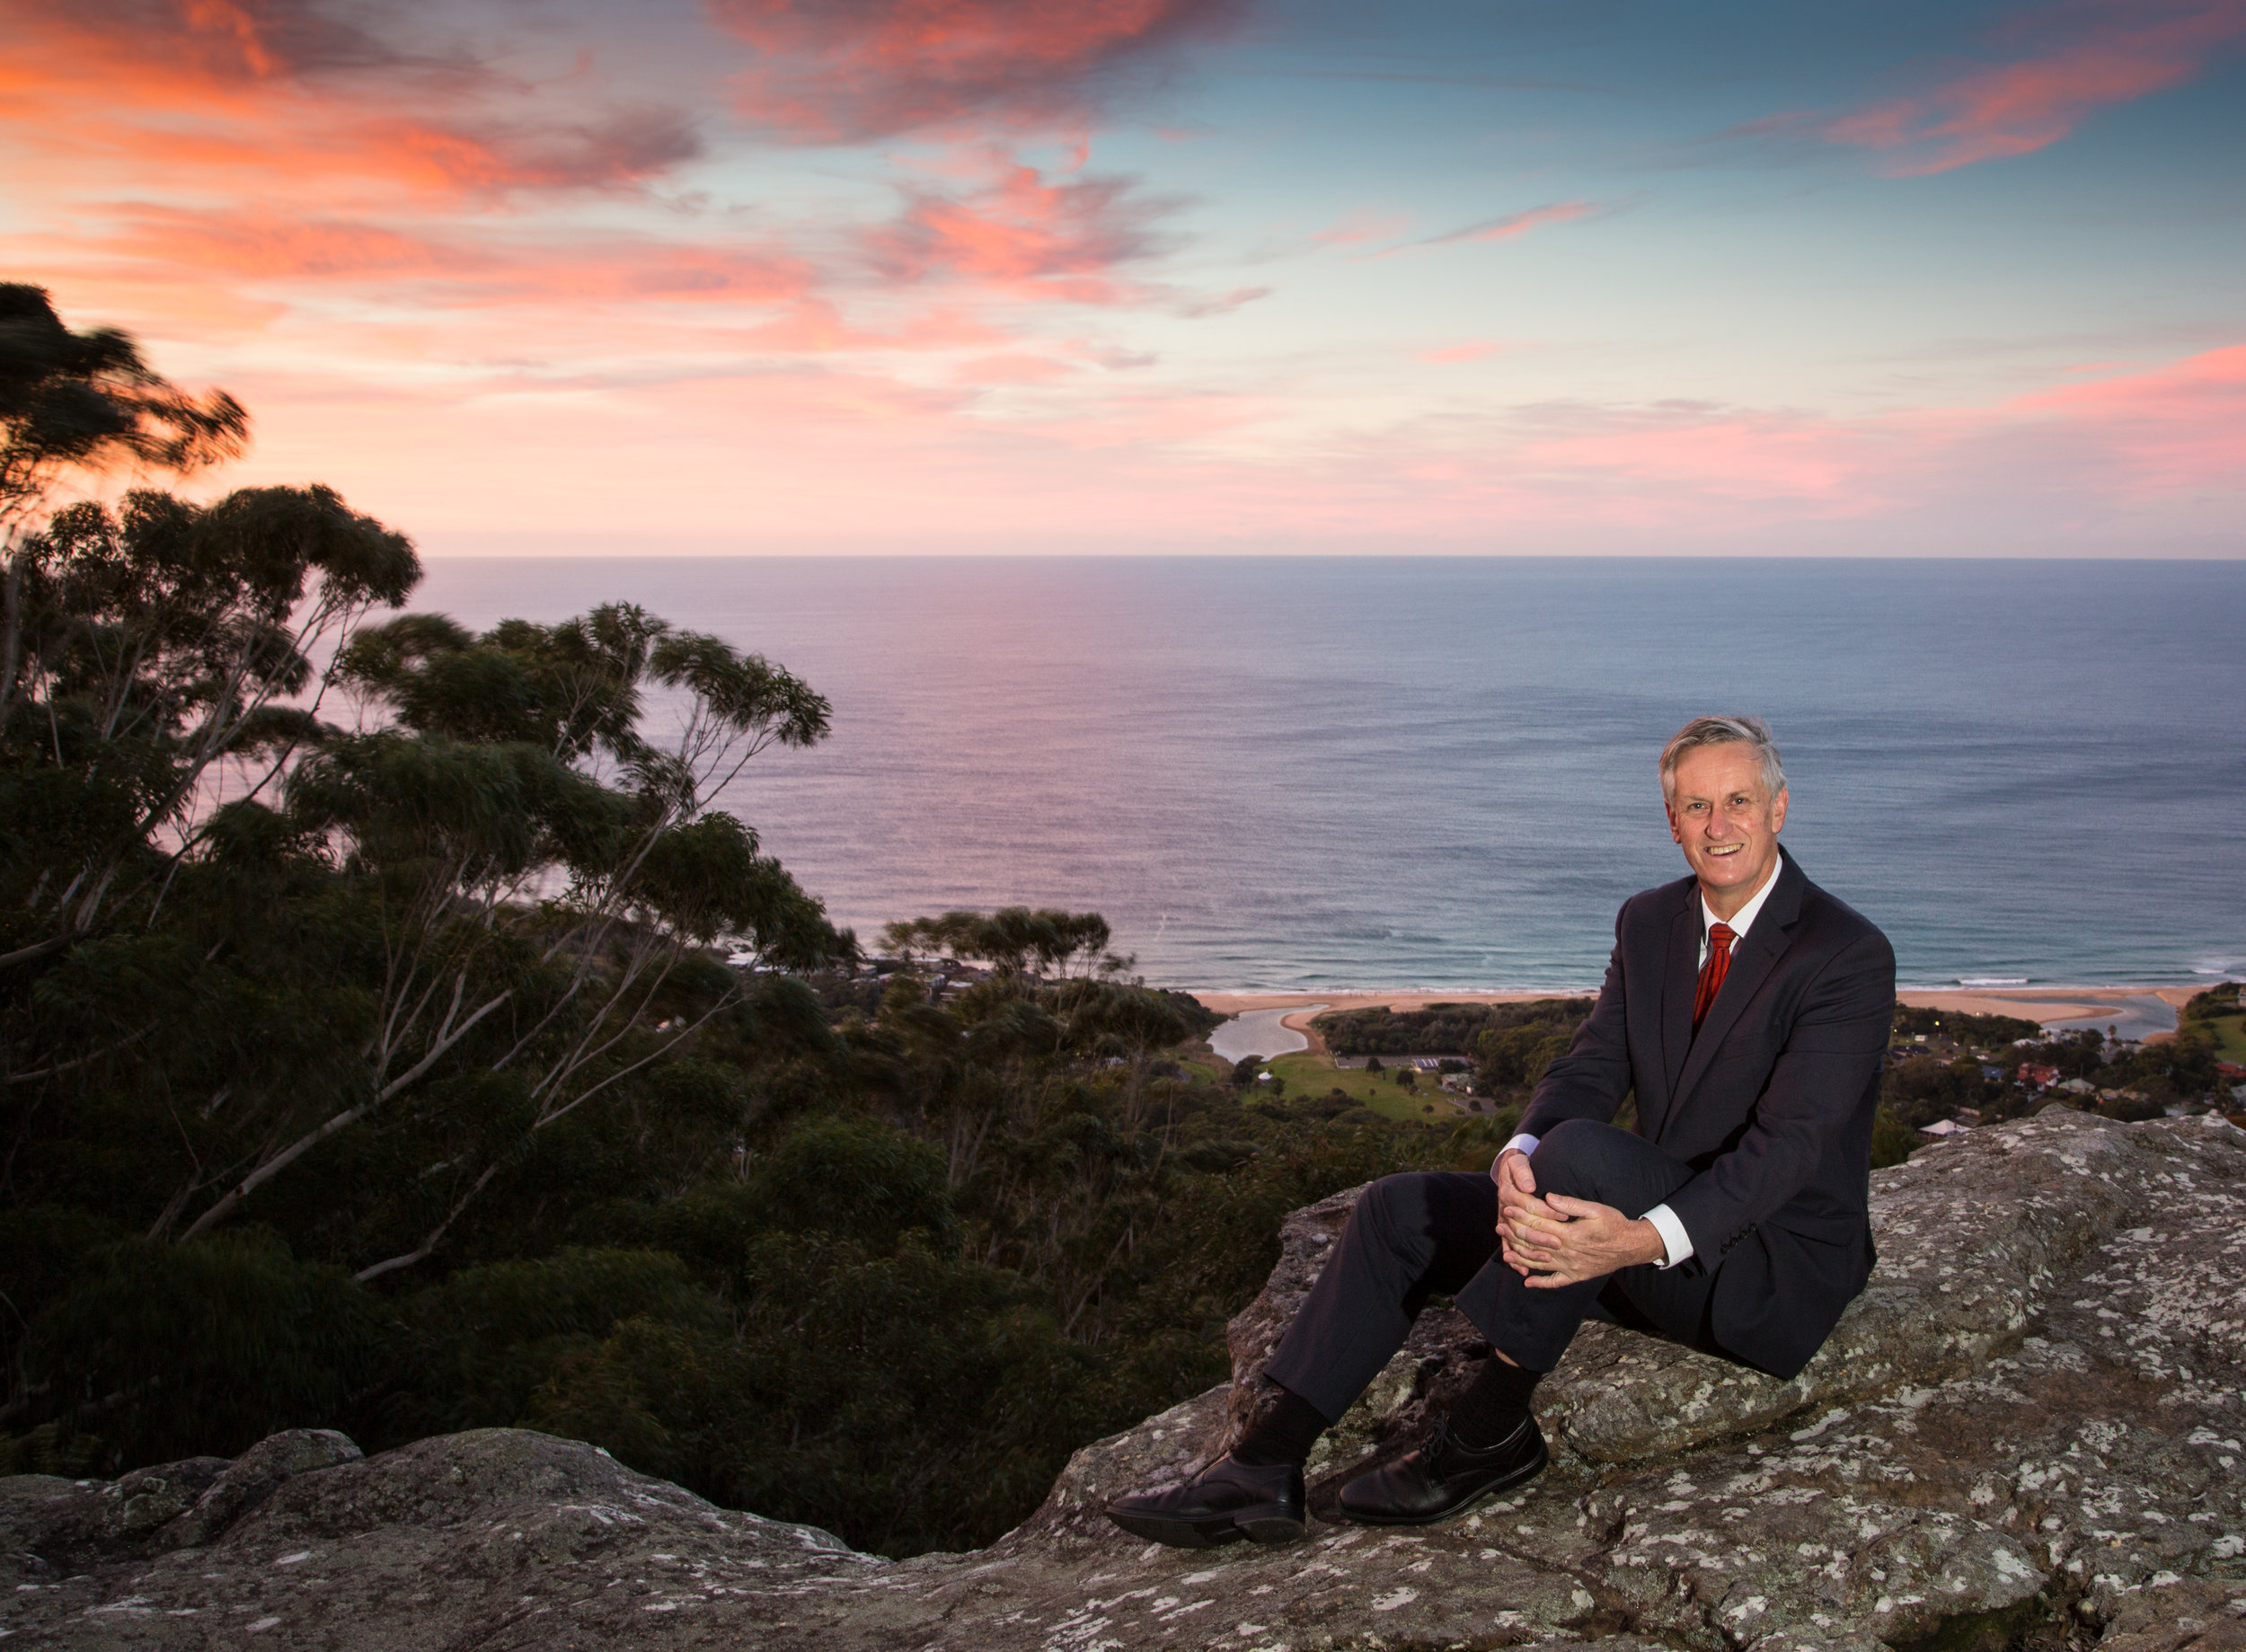 John Corker on the escarpment near his home on the coast between Wollongong and the Royal National Park.